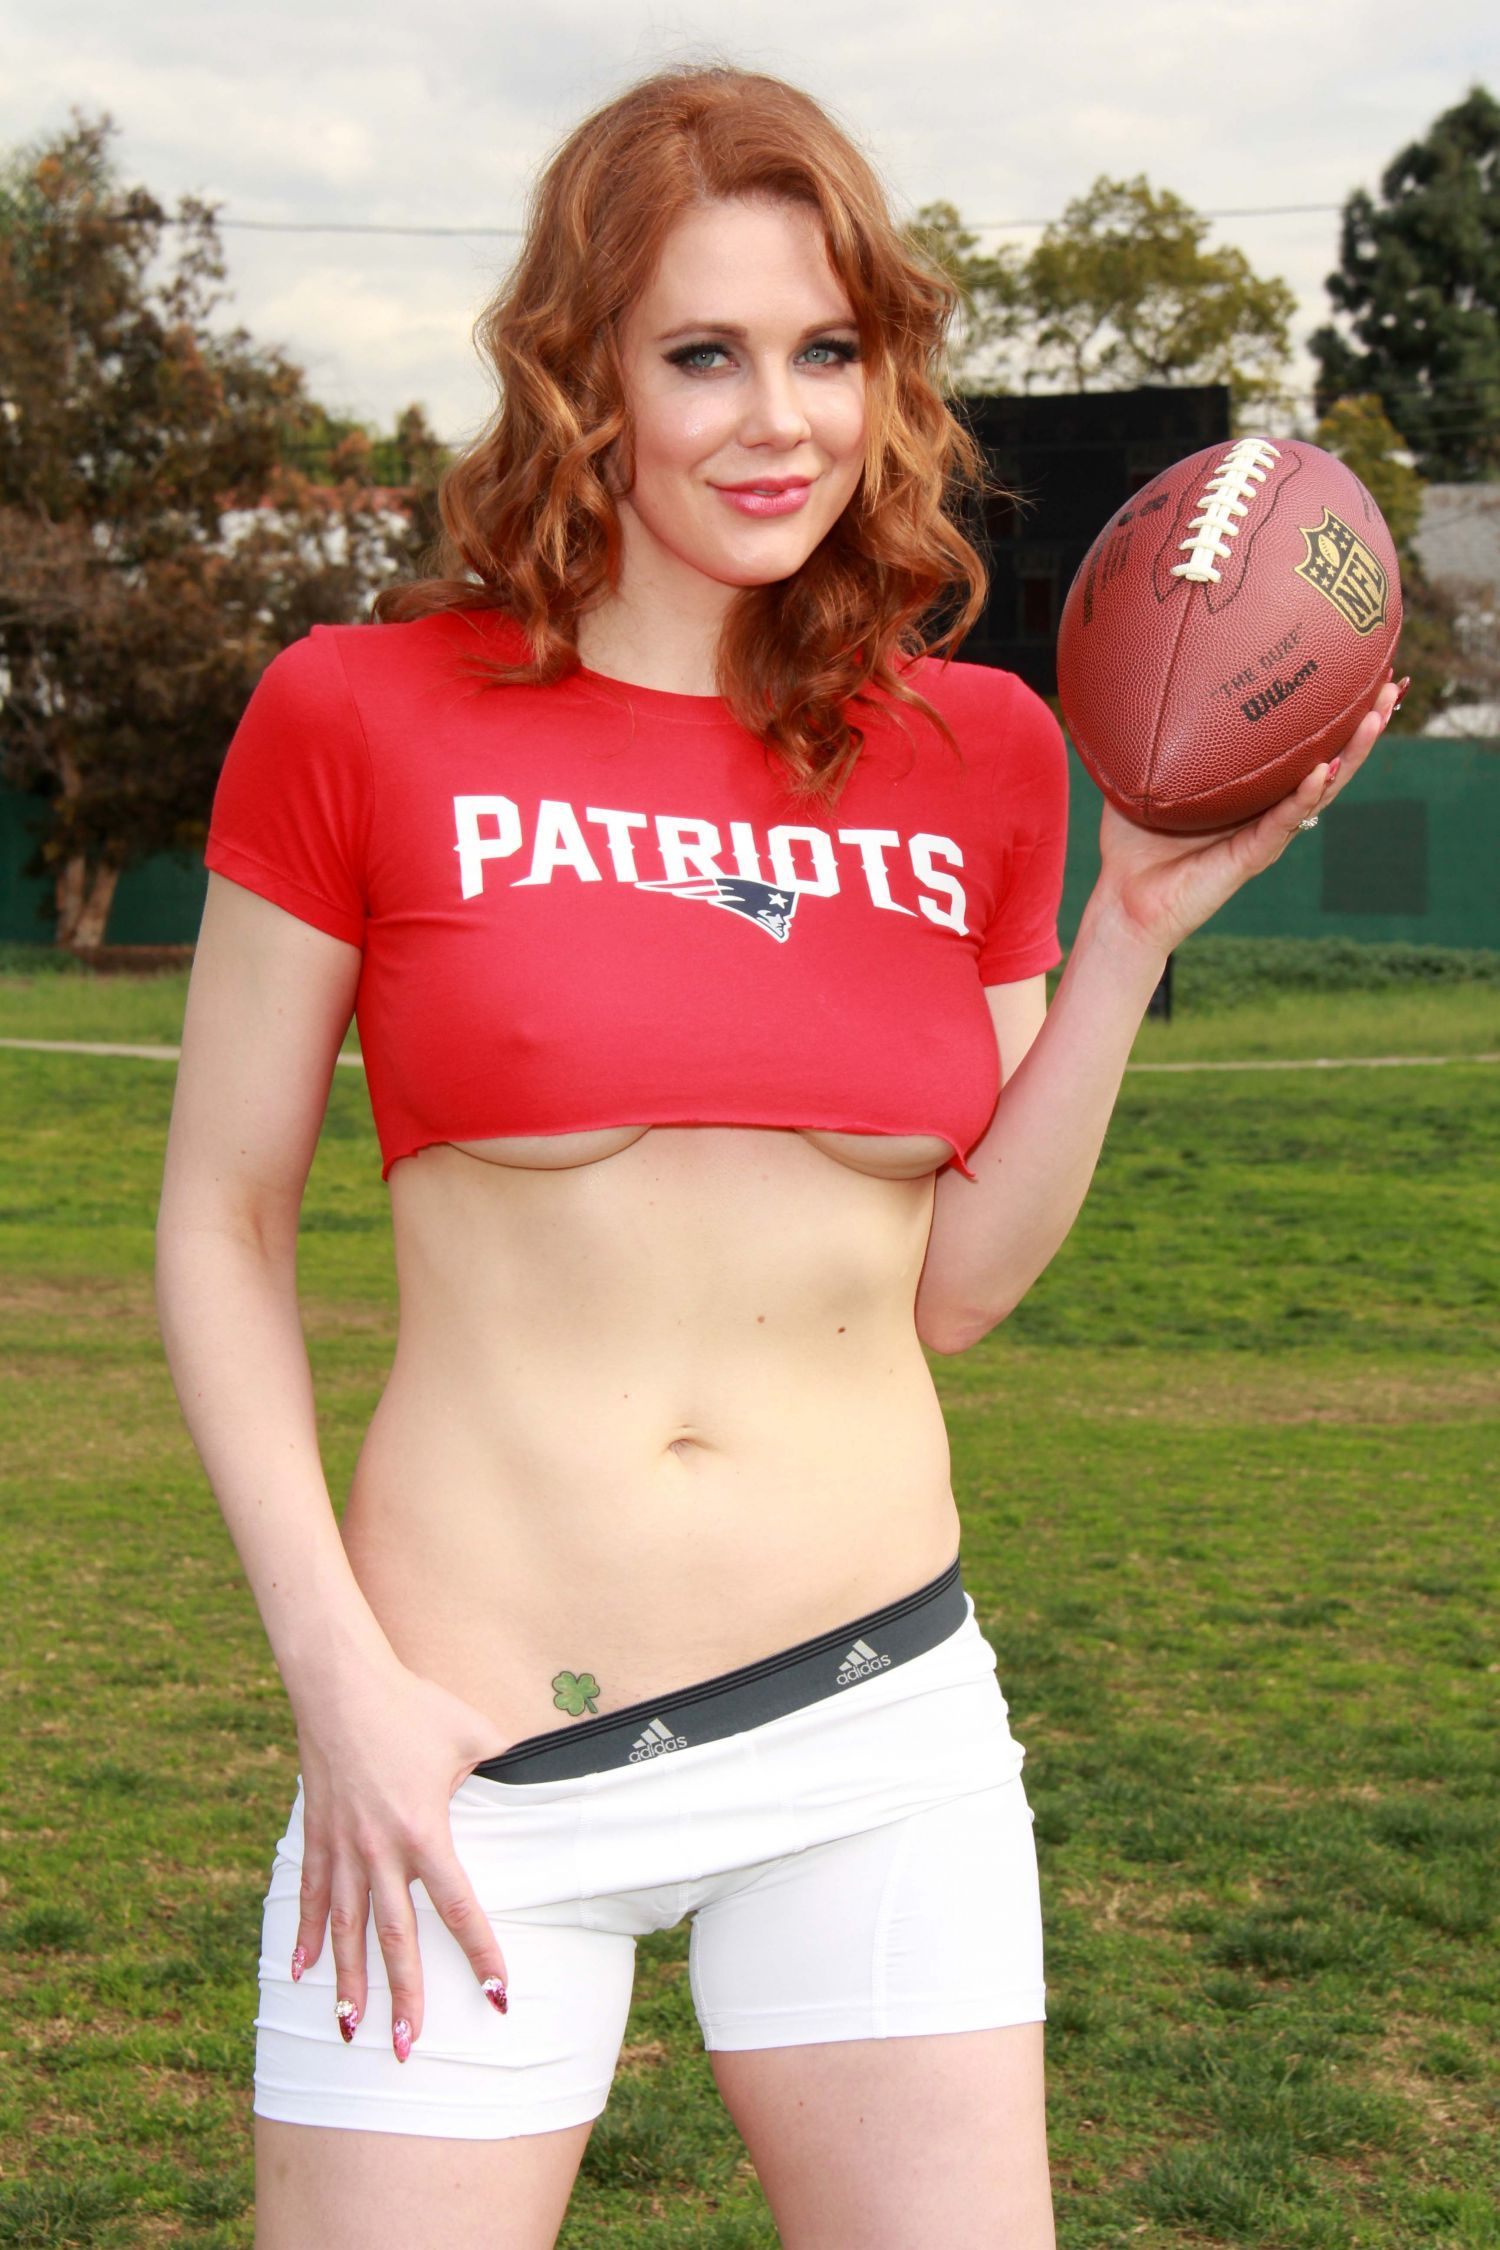 Cleavage Maitland Ward Baxter nudes (56 foto and video), Sexy, Paparazzi, Twitter, cleavage 2015